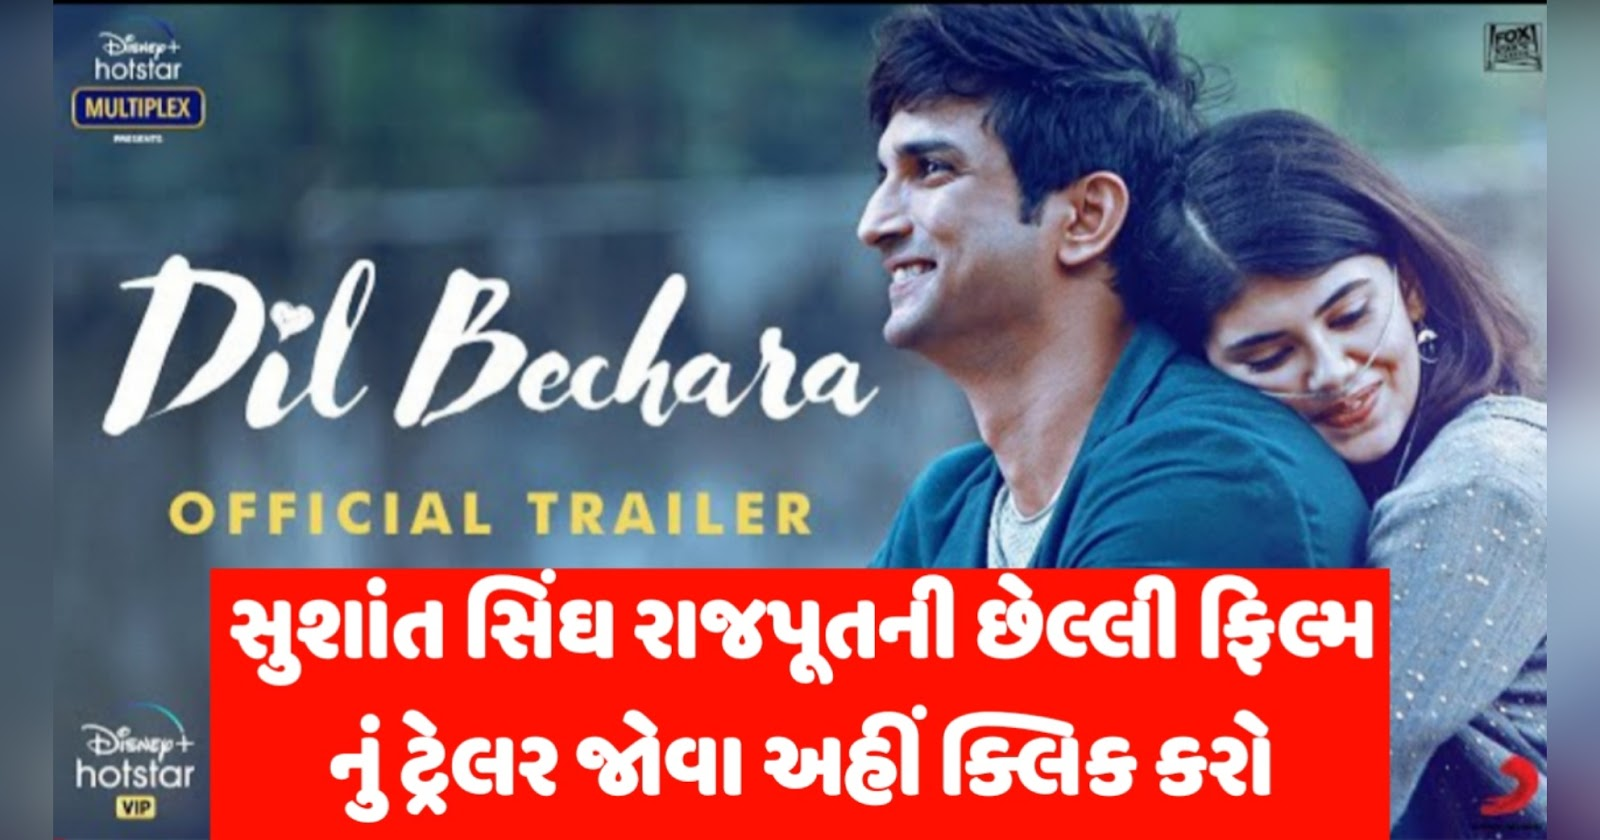 'Dil Bechara' Sushant Singh Rajput Last Movie Trailer Out